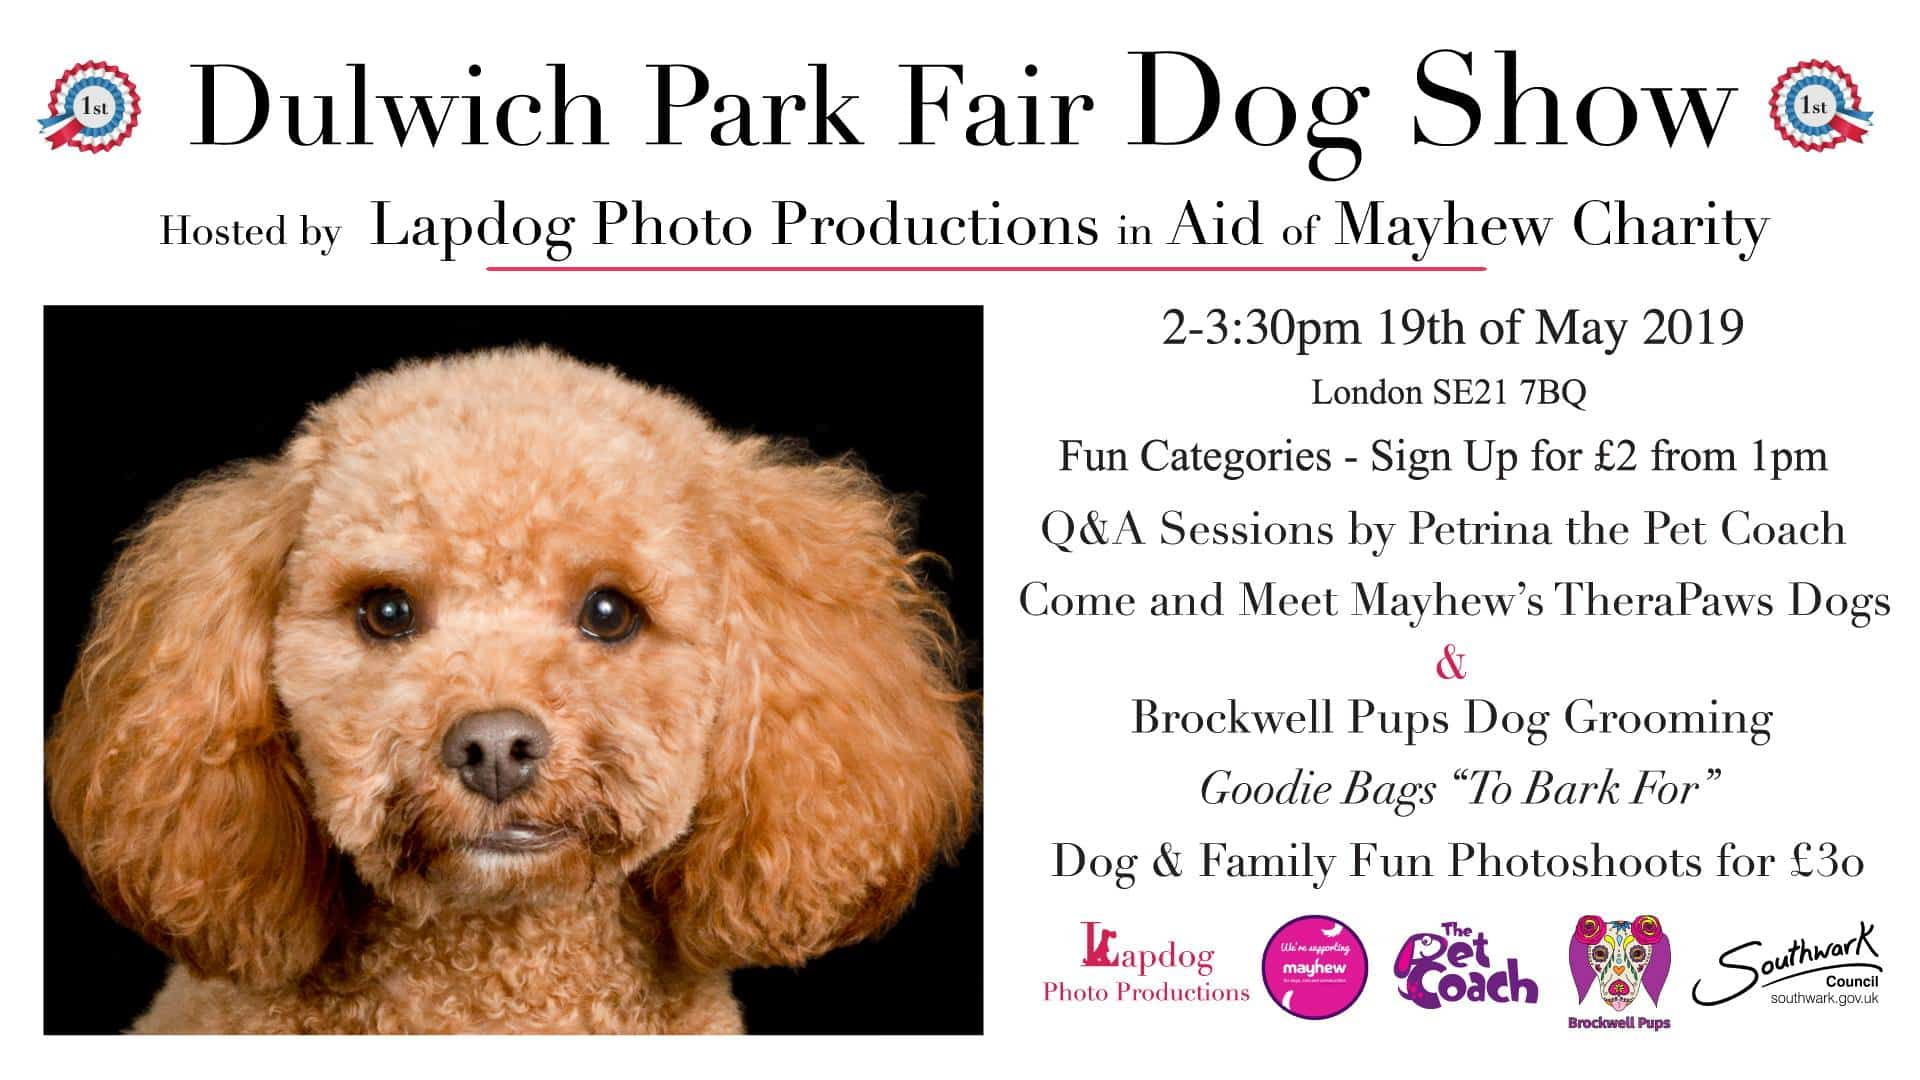 Dulwich Park Fair Dog Show